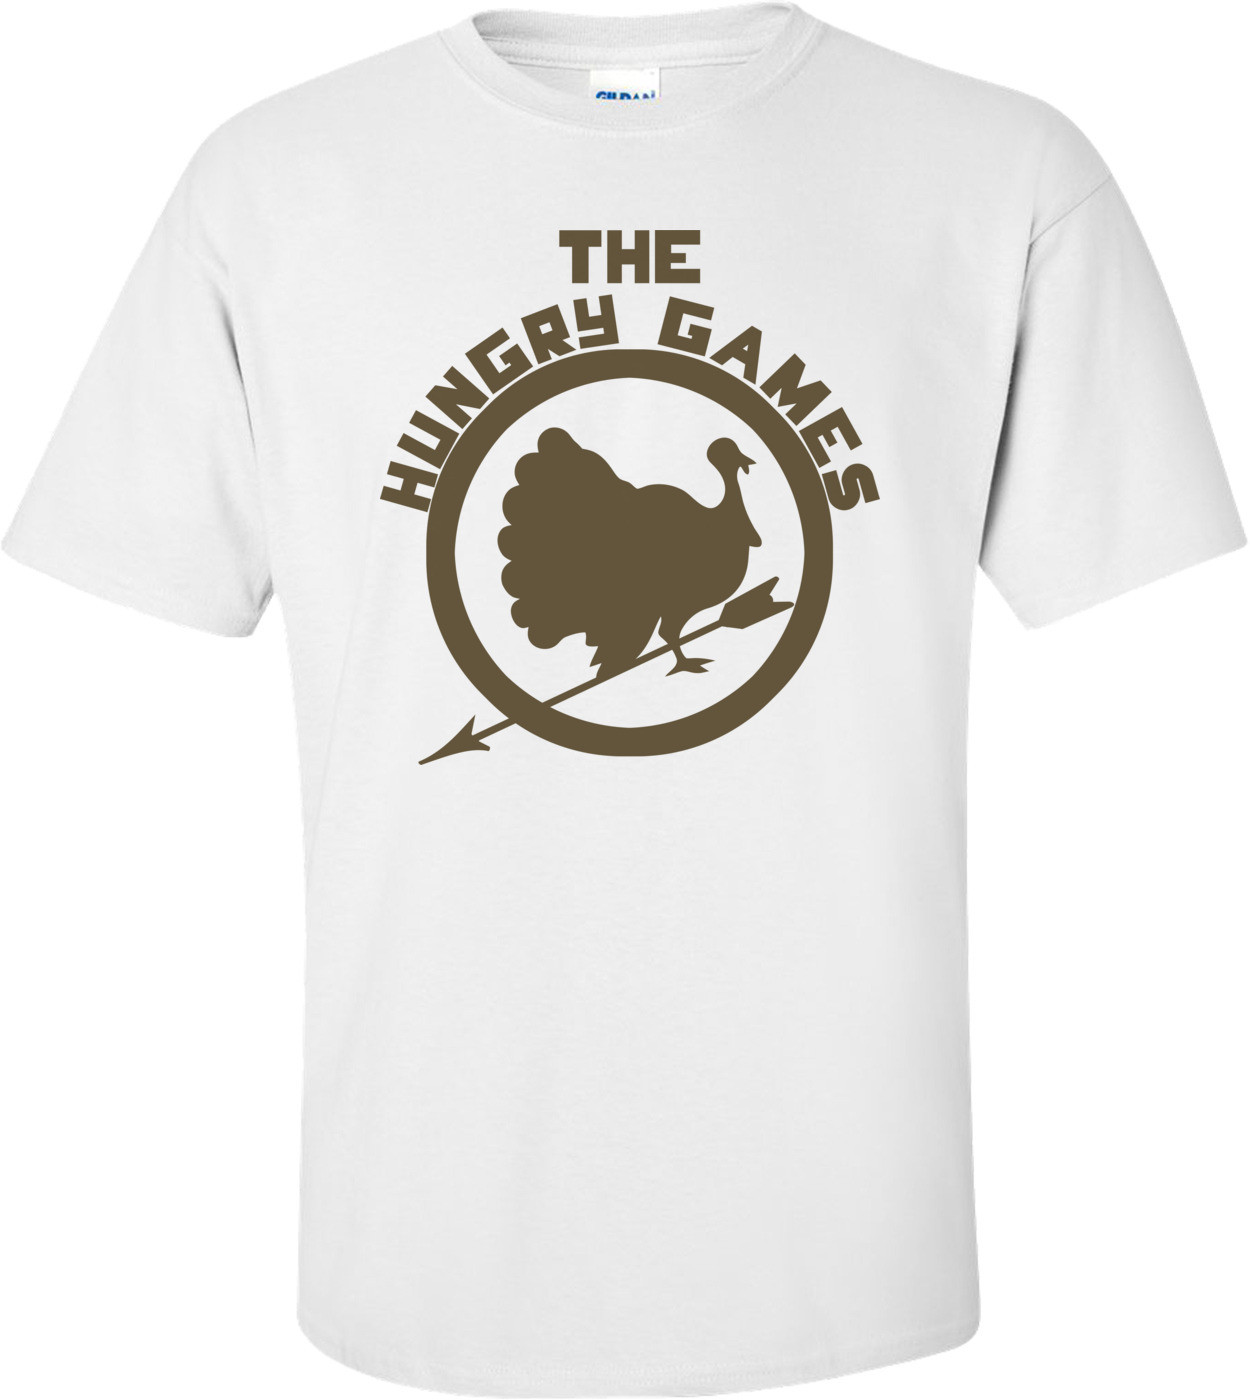 The Hungry Games Shirt